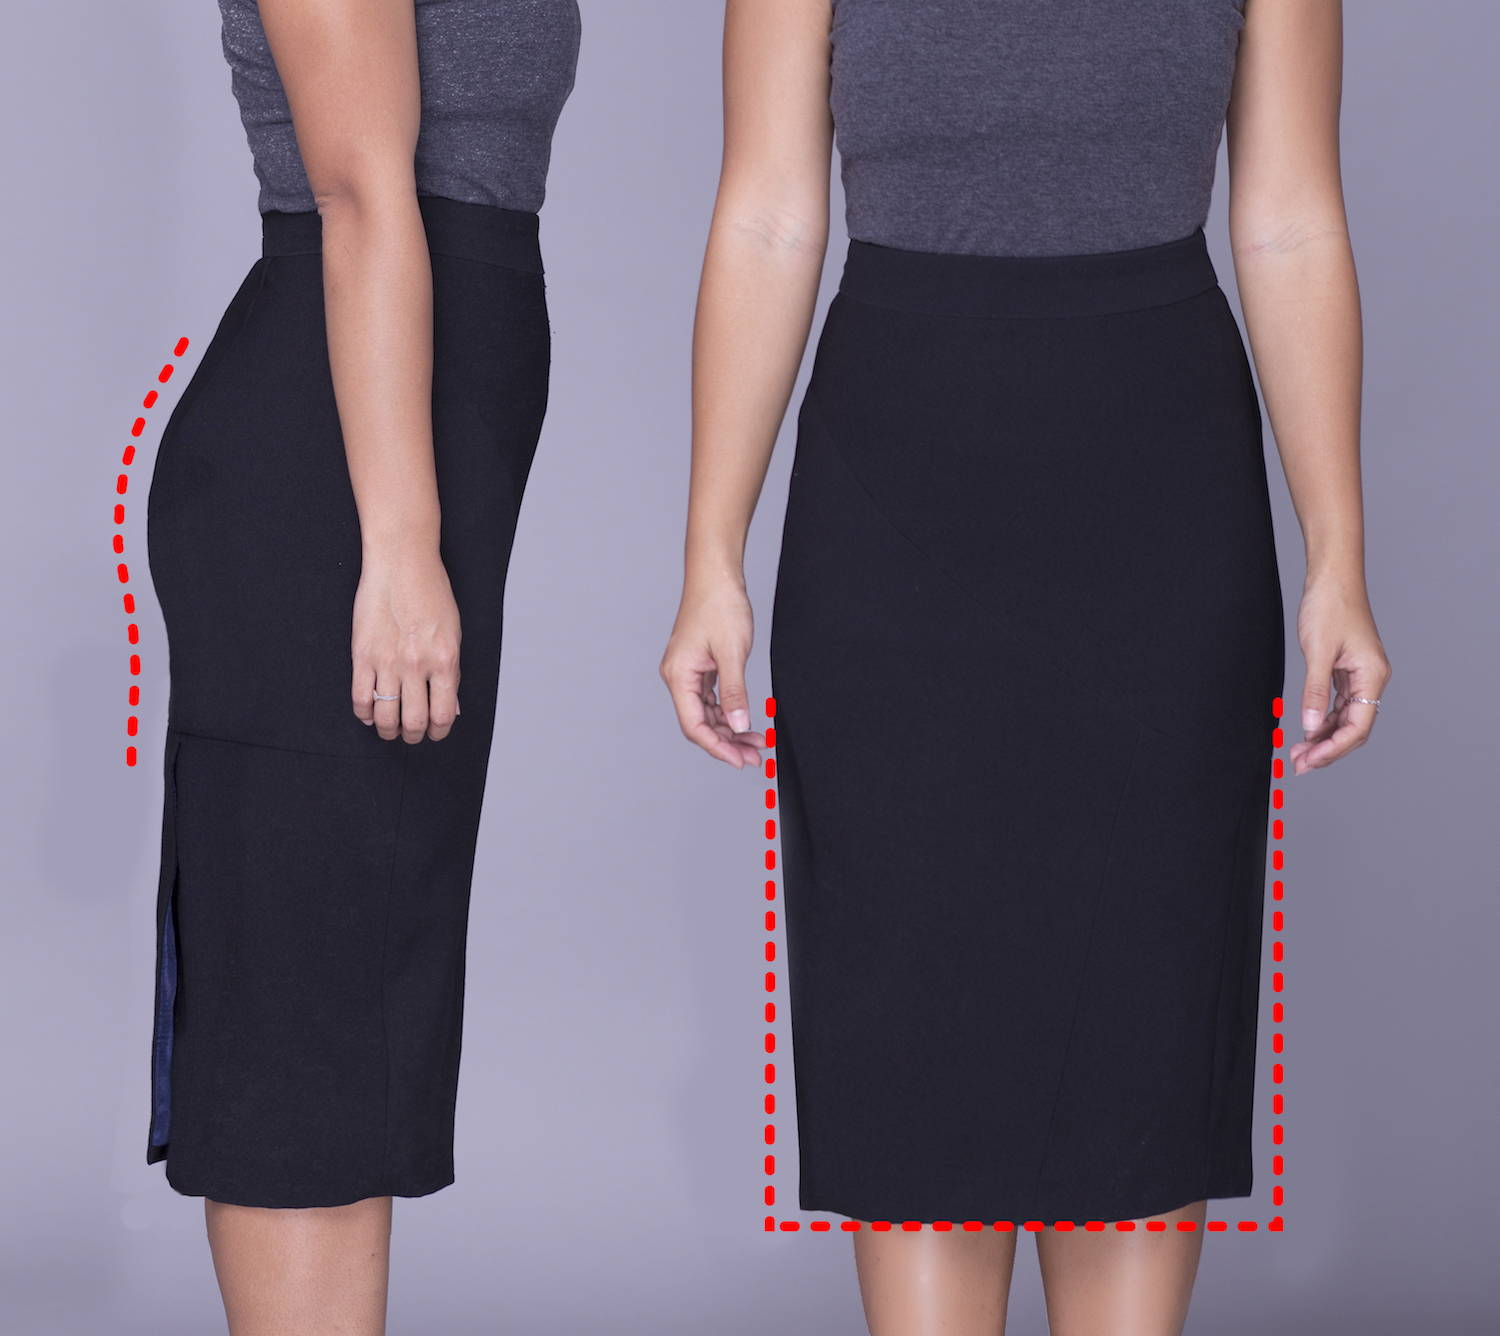 Rita Phil custom pencil skirts | Contoured fit